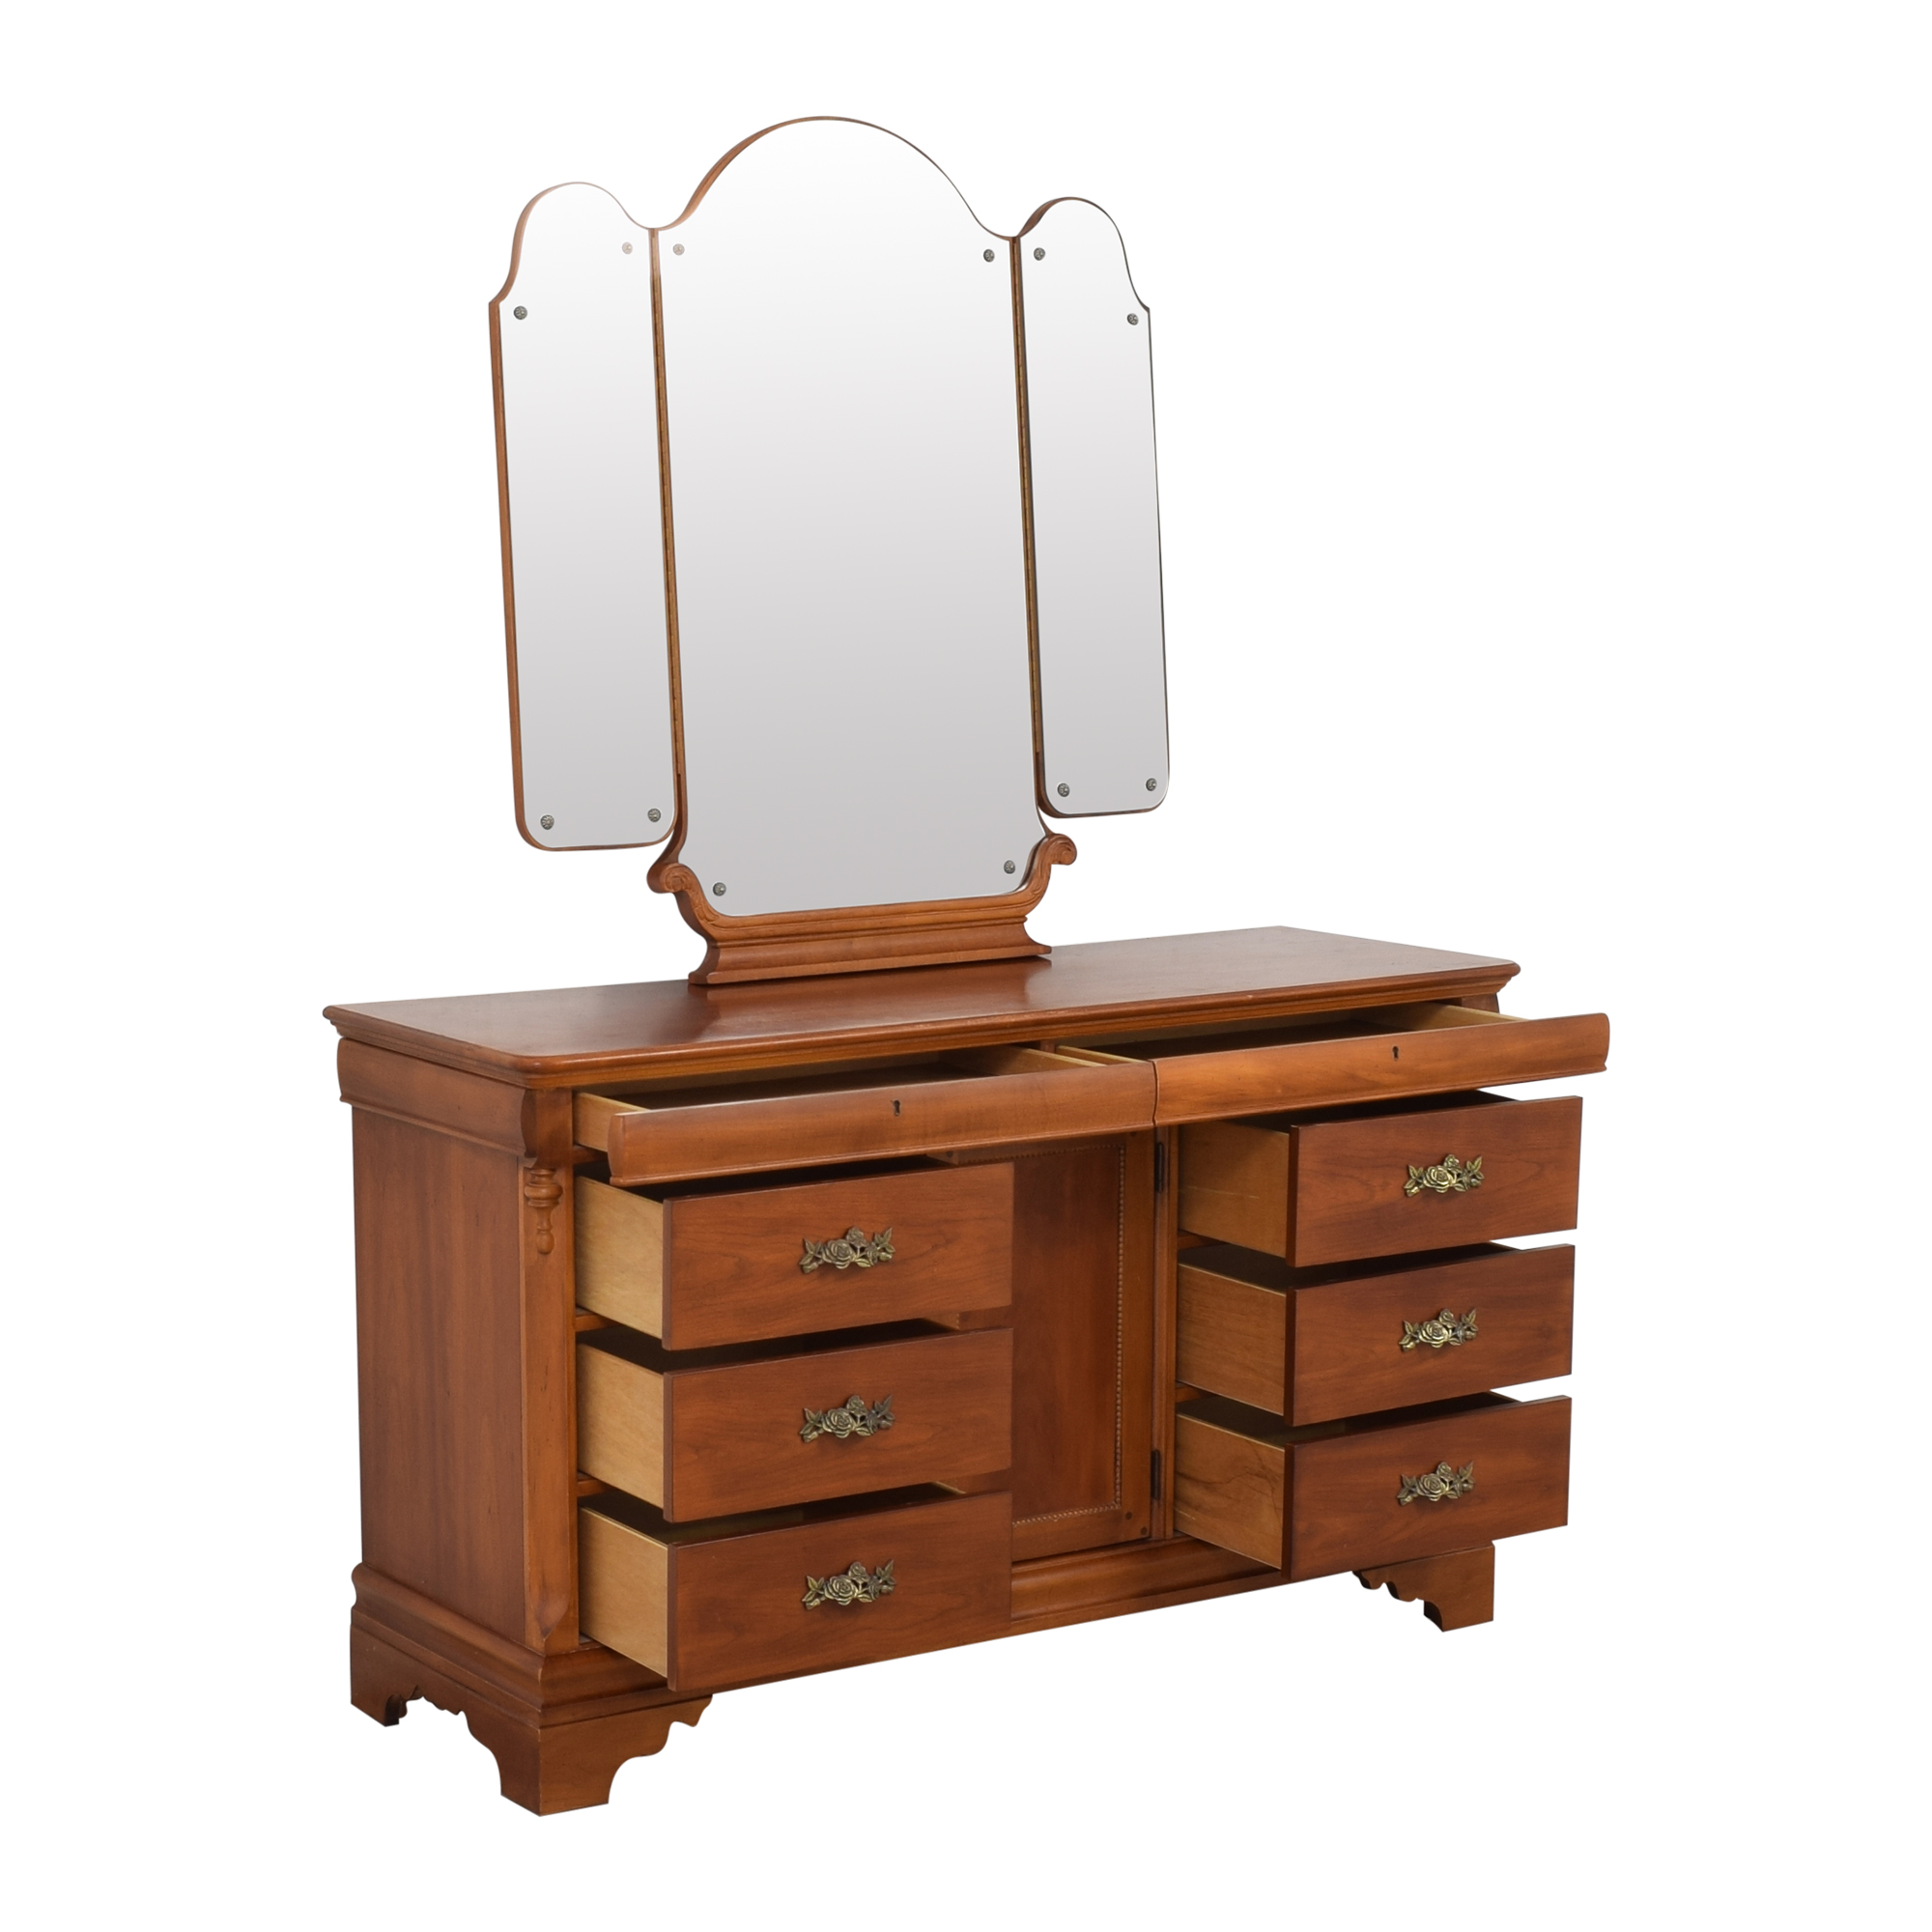 Betsy Cameron for Lexington Dresser with Mirror sale